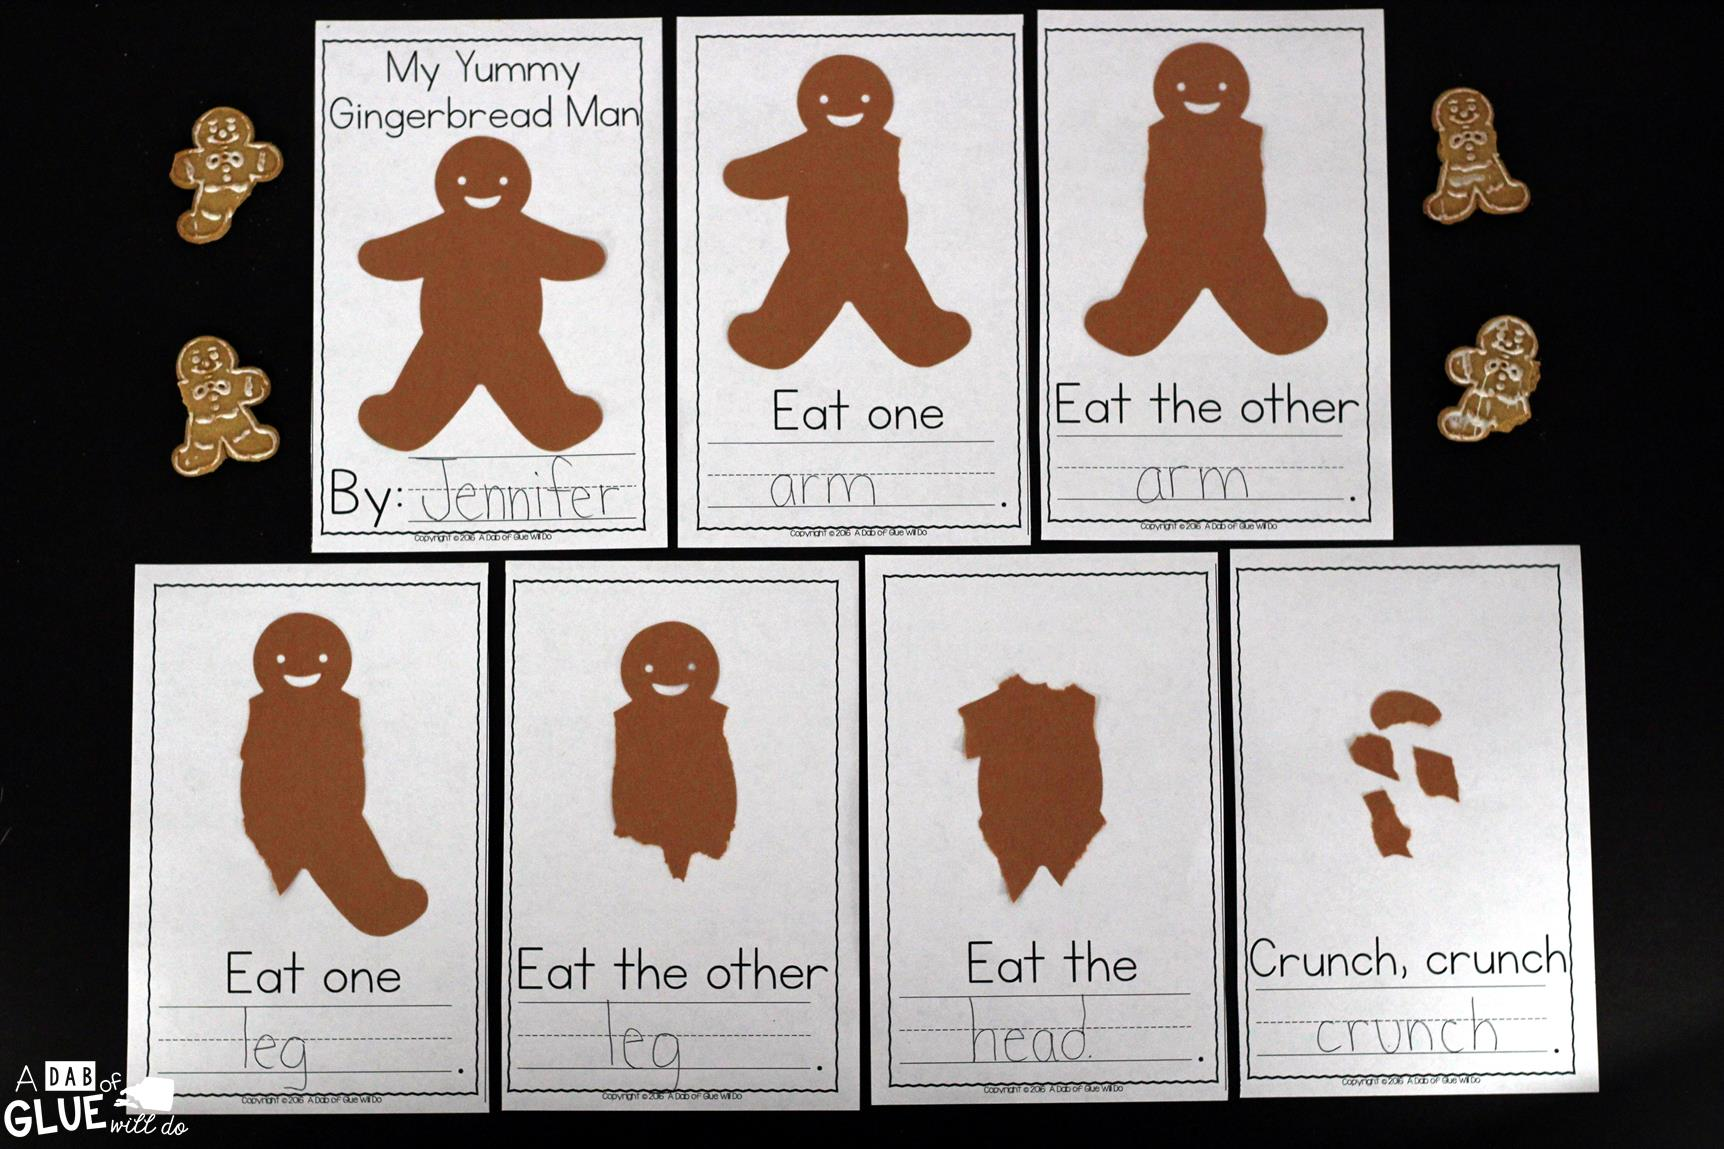 My Yummy Gingerbread Man Book